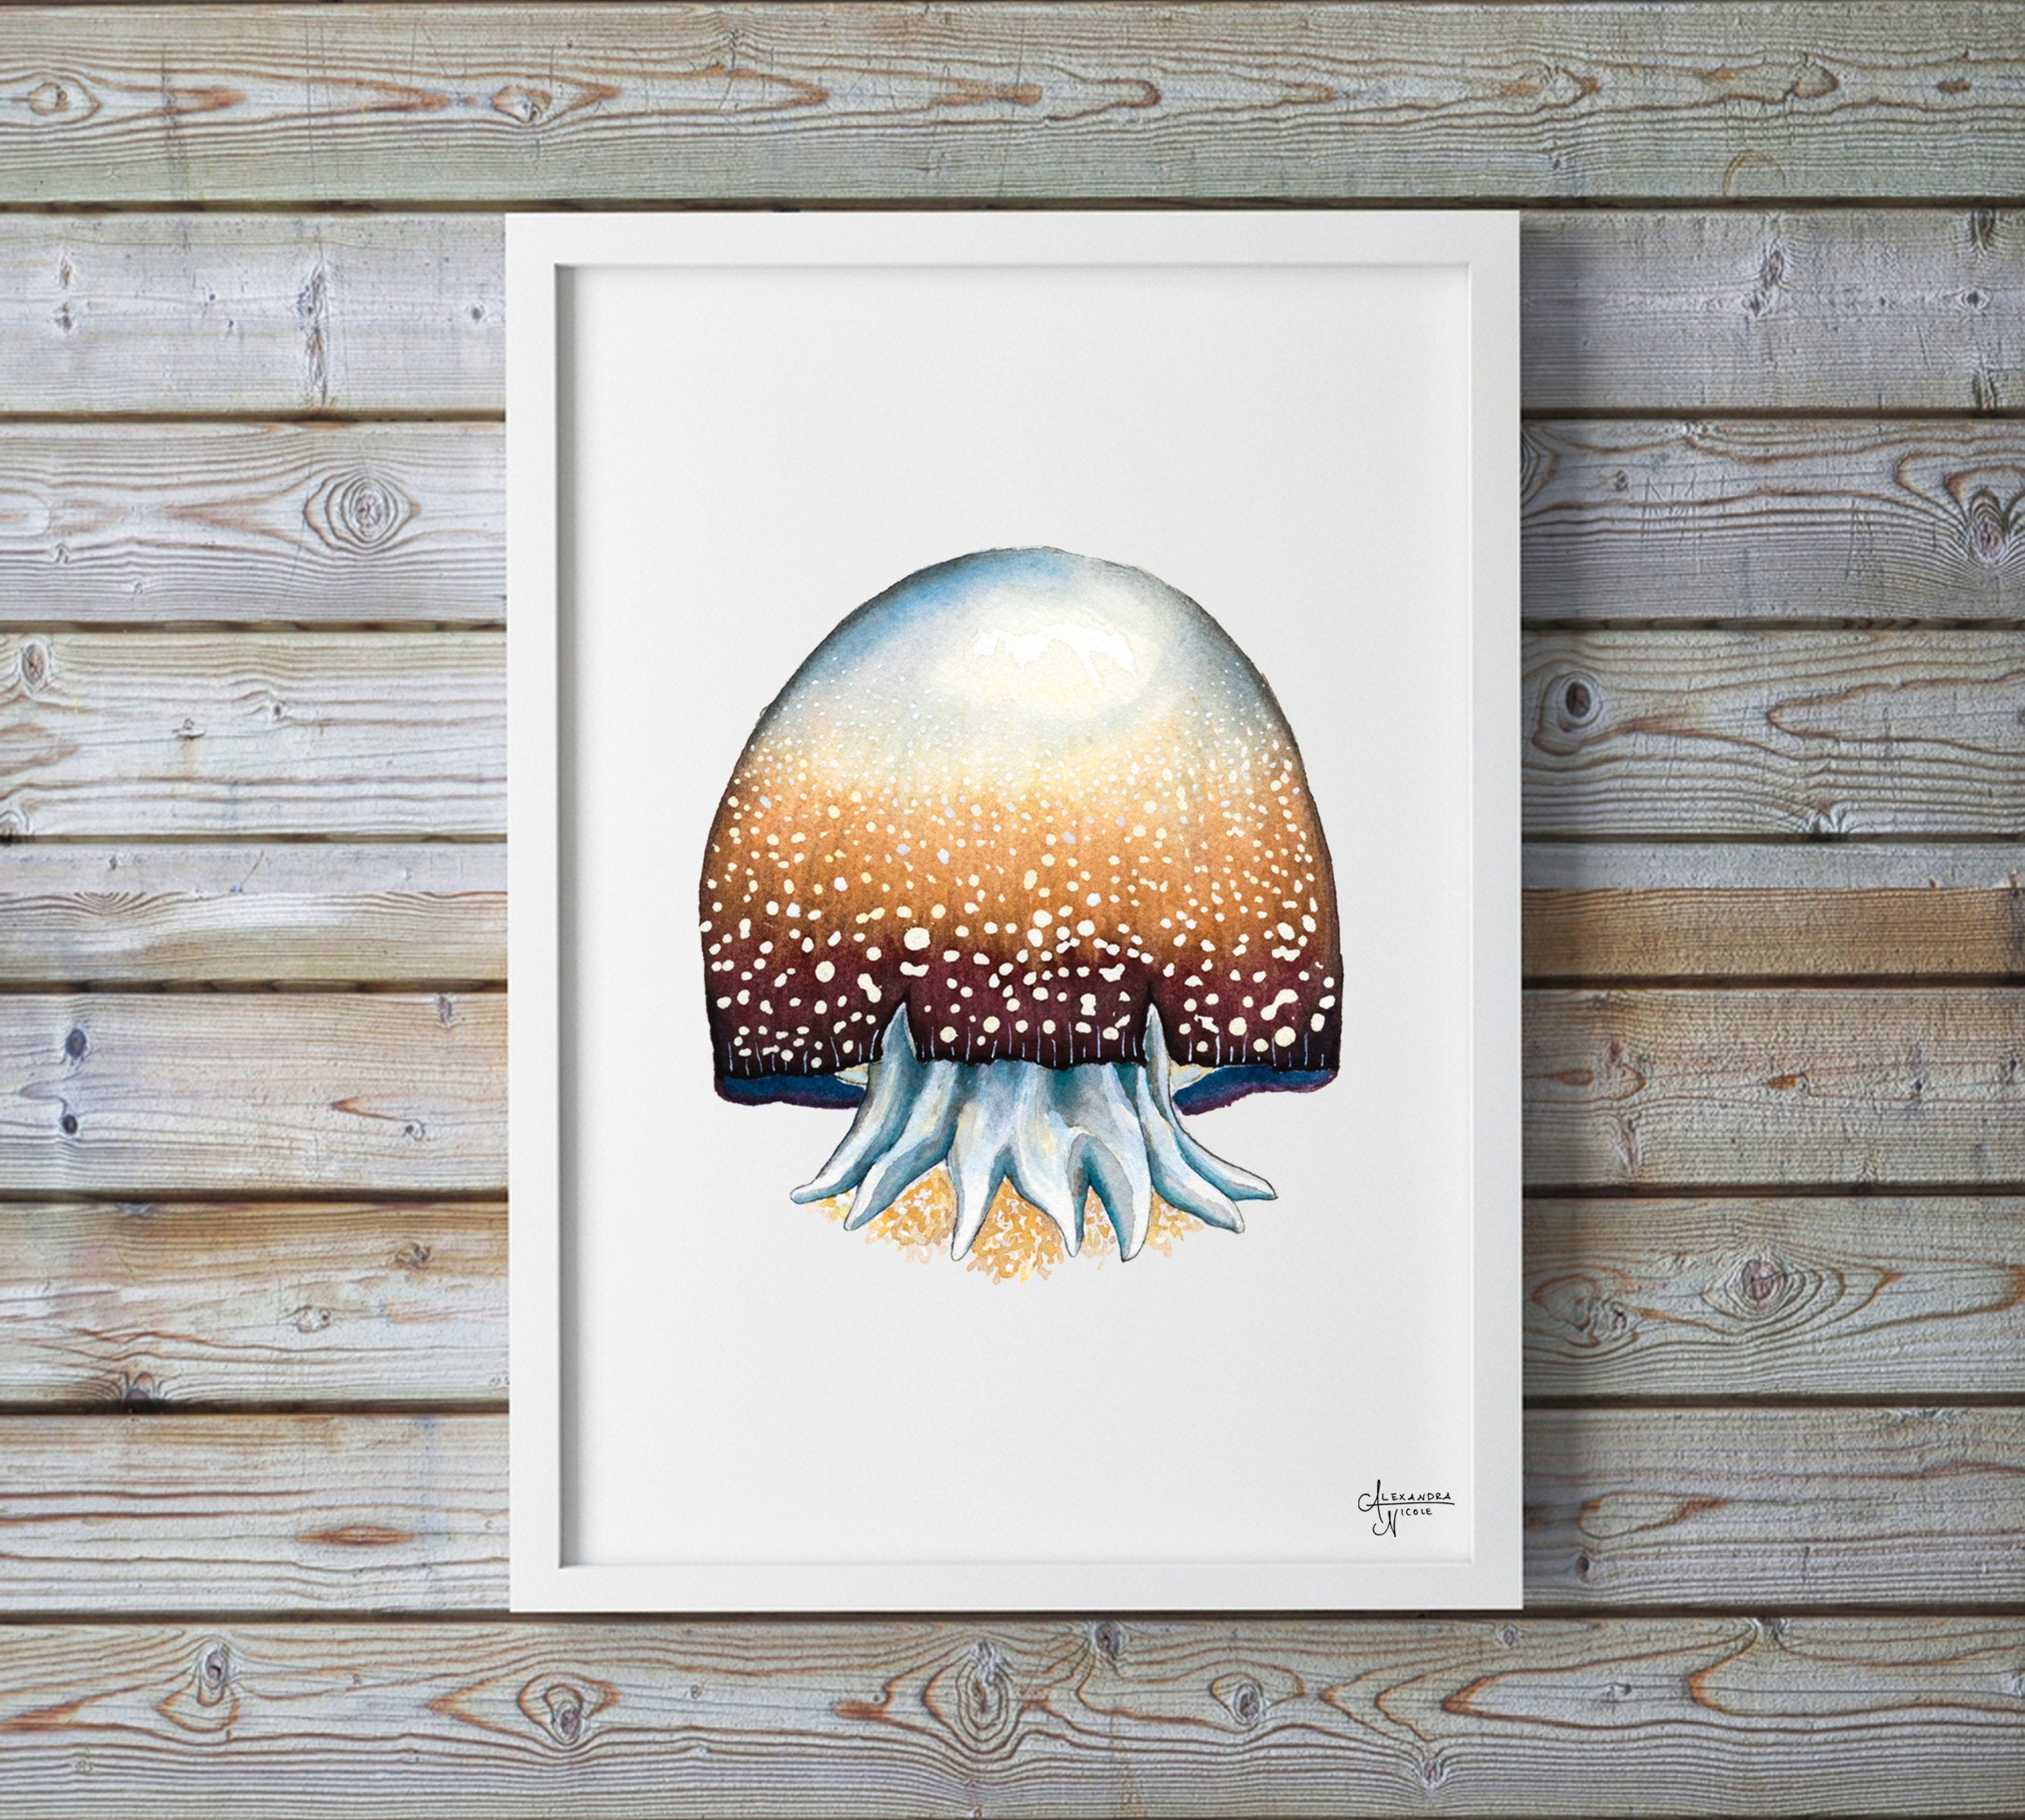 Cannonball Jellyfish Fine Art Print, Watercolor Sea Creatures by Coastal Artist Alexandra Nicole $27